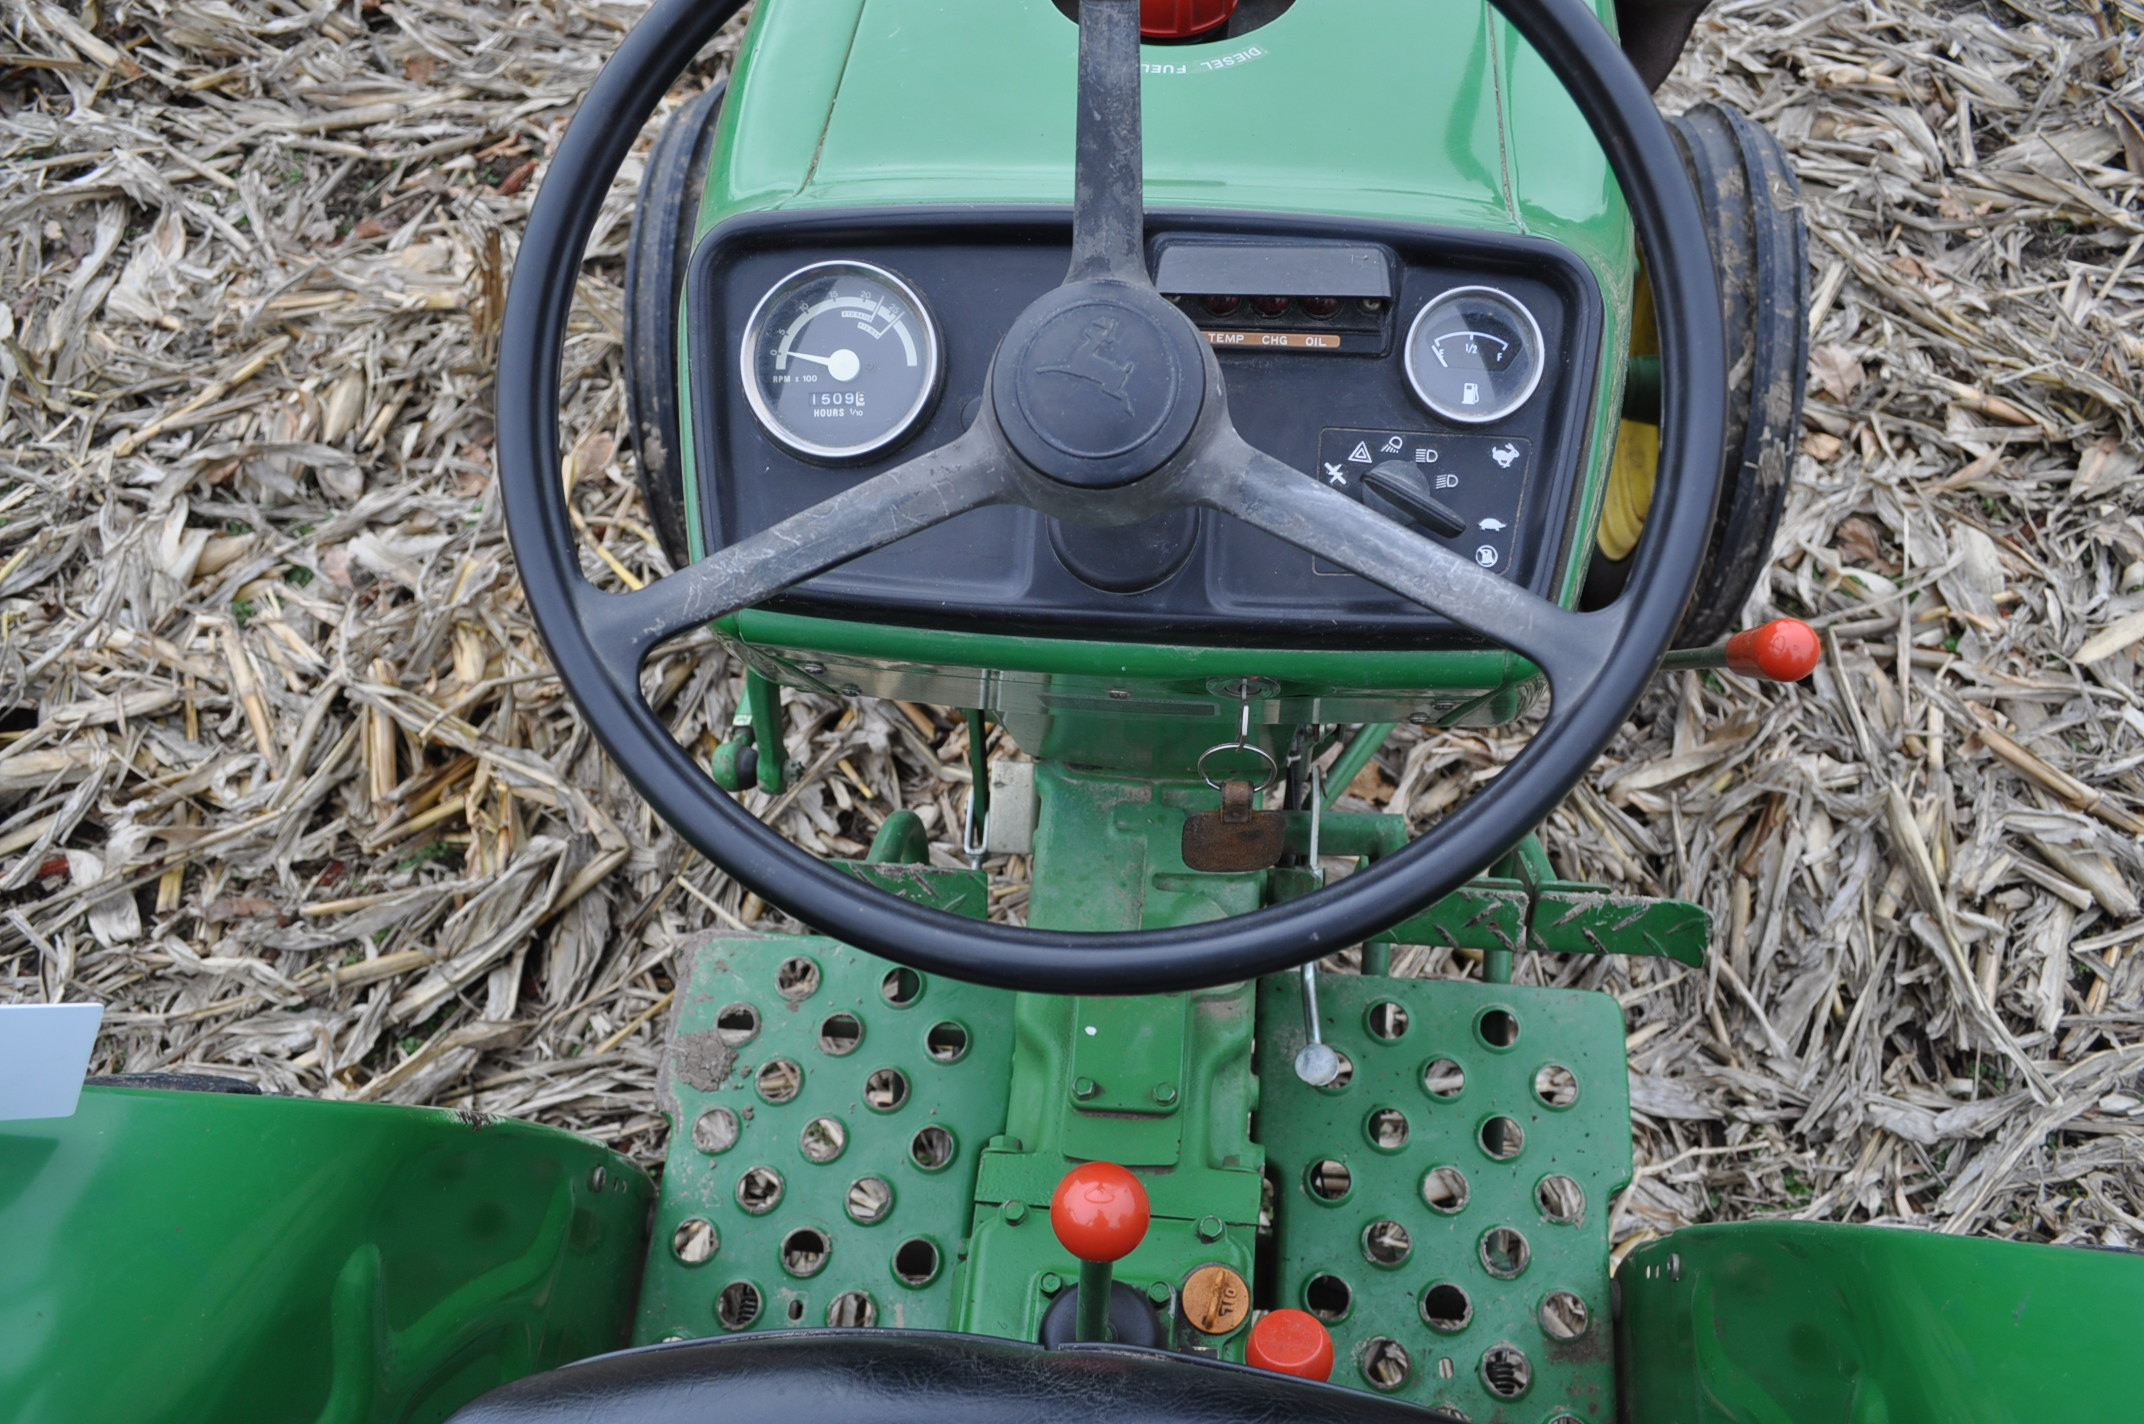 John Deere 850 utility tractor, diesel, 12.4-24 rear, 5.00-16 front, 2 hyd remotes, 3 pt, 540 pto, - Image 11 of 13